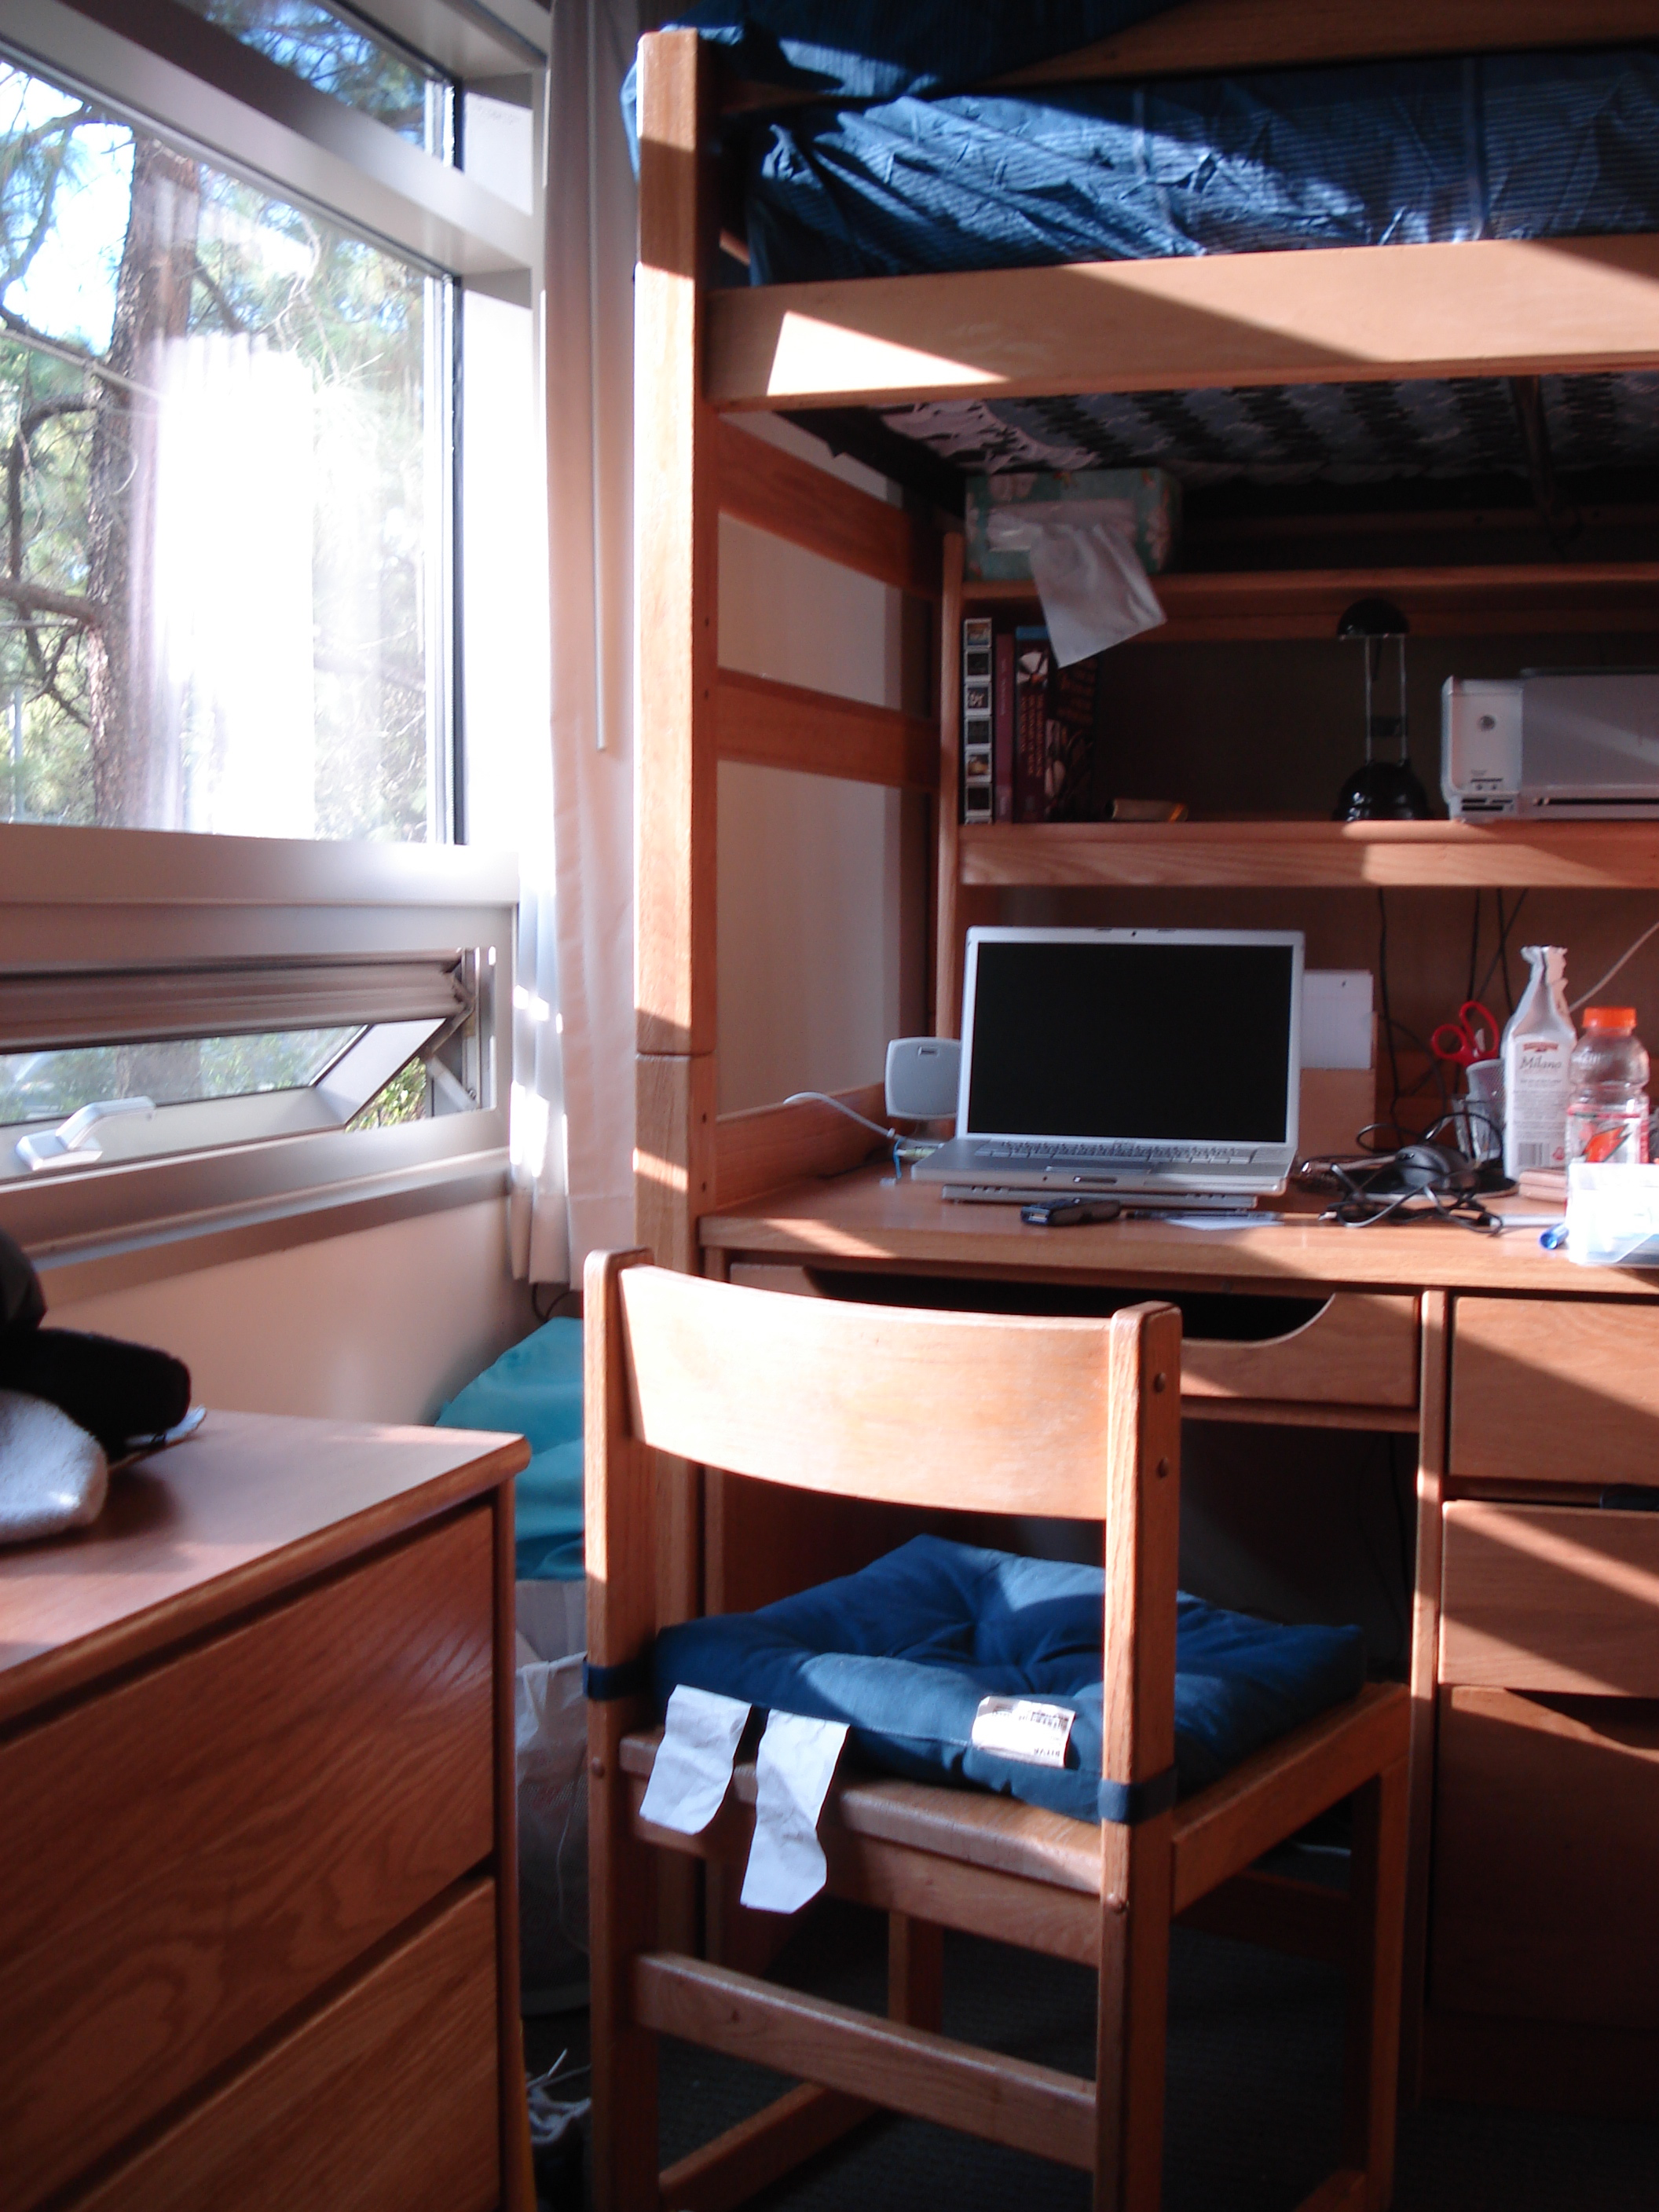 Even the neatest and tidiest dorm room can be crawling with germs.